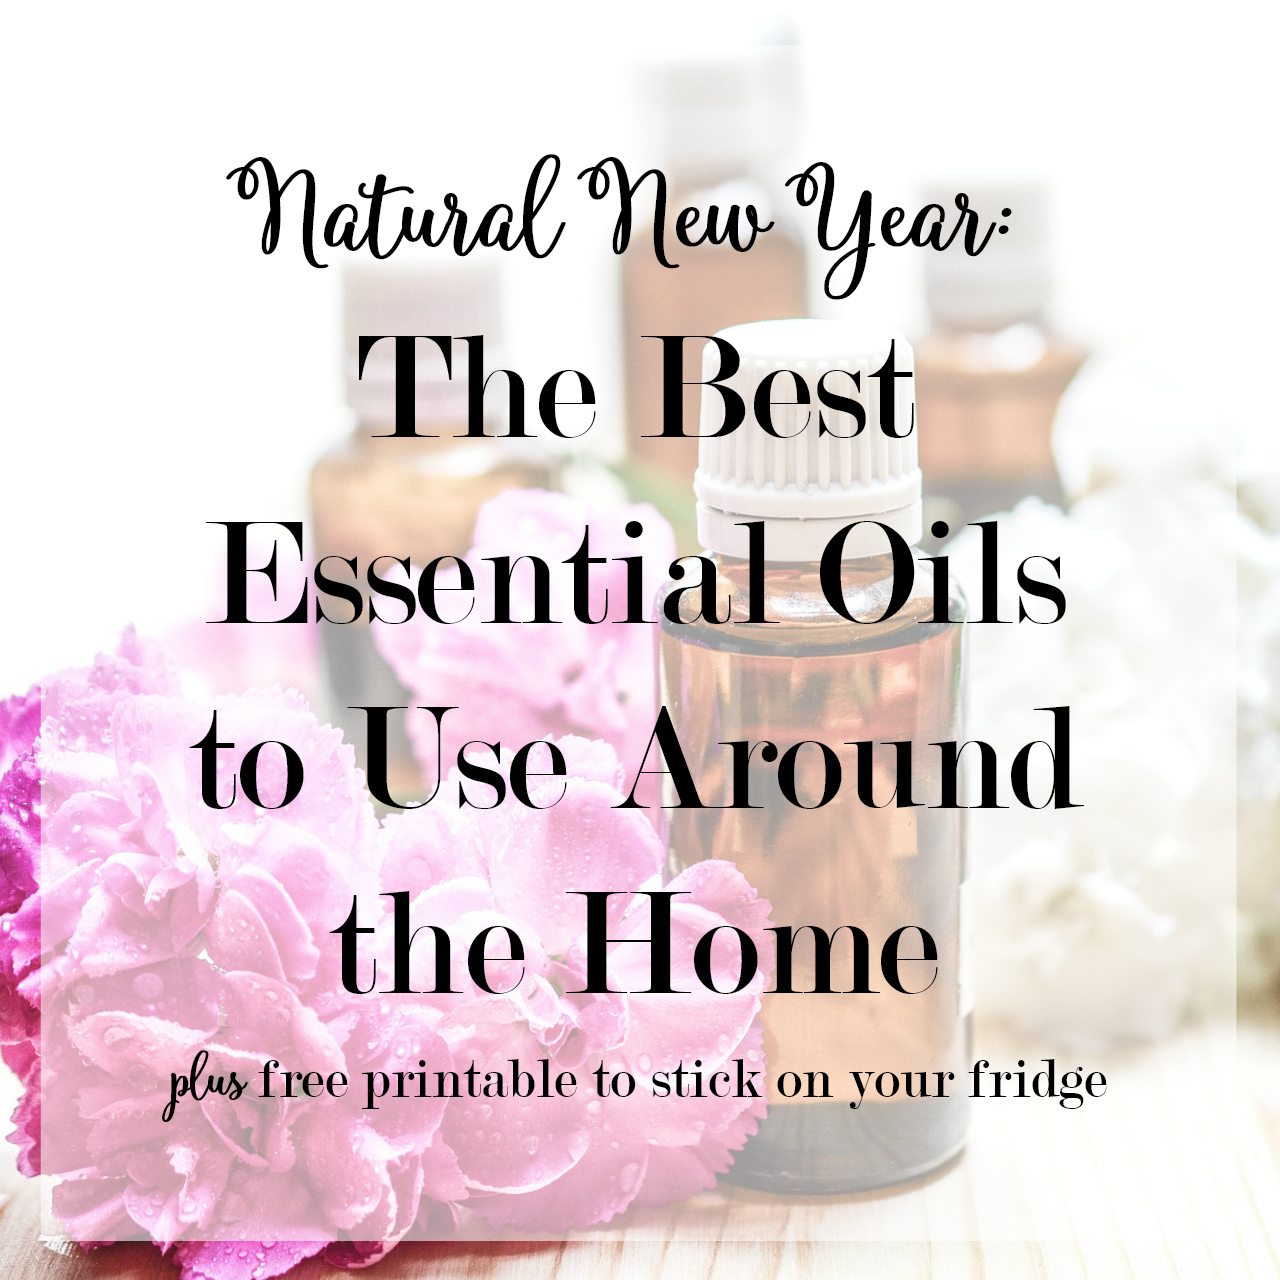 The Best Essential Oils to Use Around the Home - Discover the Best Essential Oils to Start with and how to use them in your home with my easy Essential Oil Start Kit and Handy Tips Printable